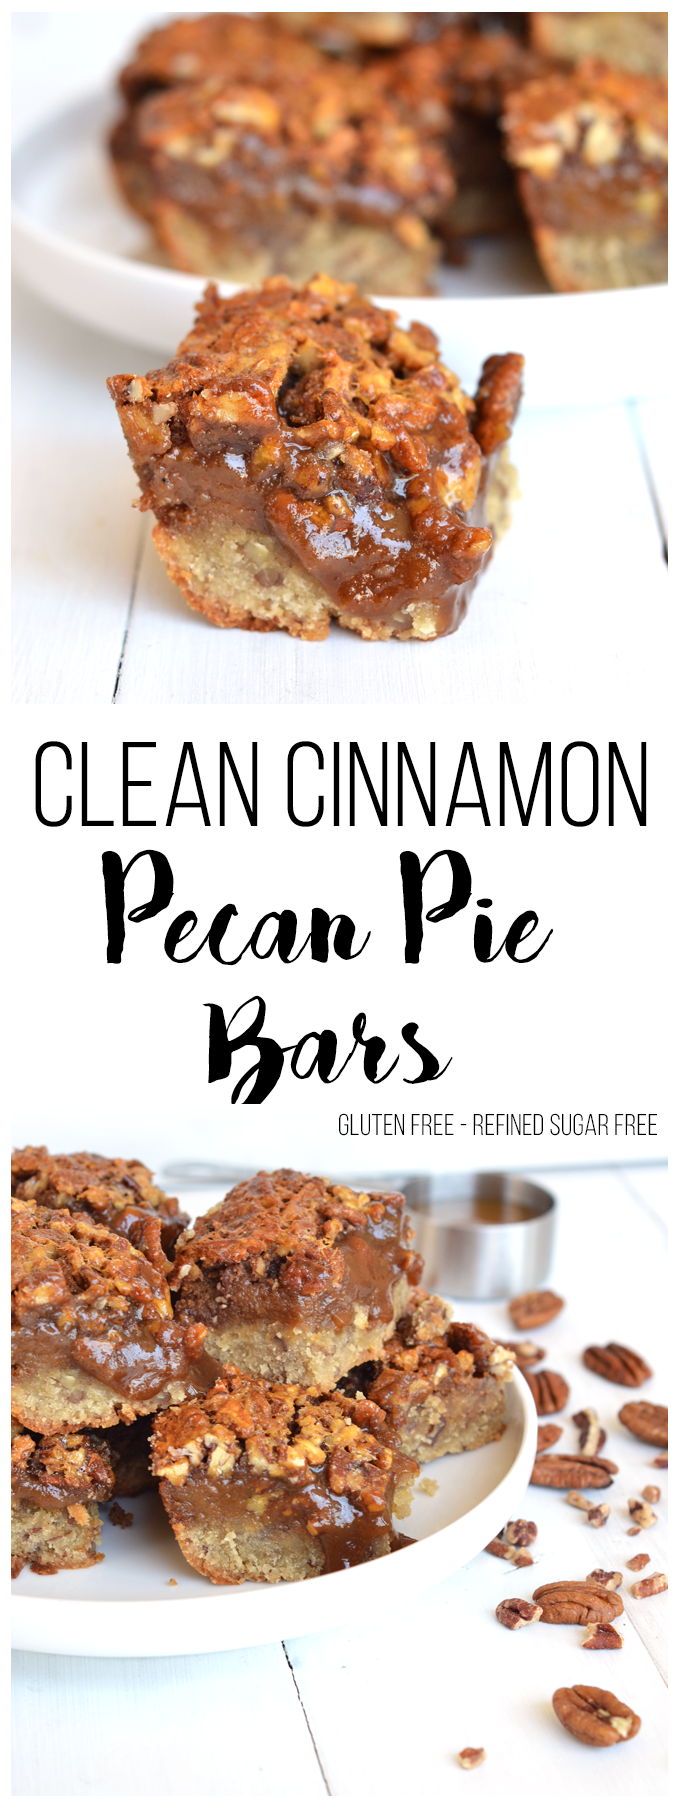 Looking for a healthy dessert for fall? This Clean Cinnamon Pecan Pie Bar recipe is perfect for all your gluten free and refined sugar free needs!